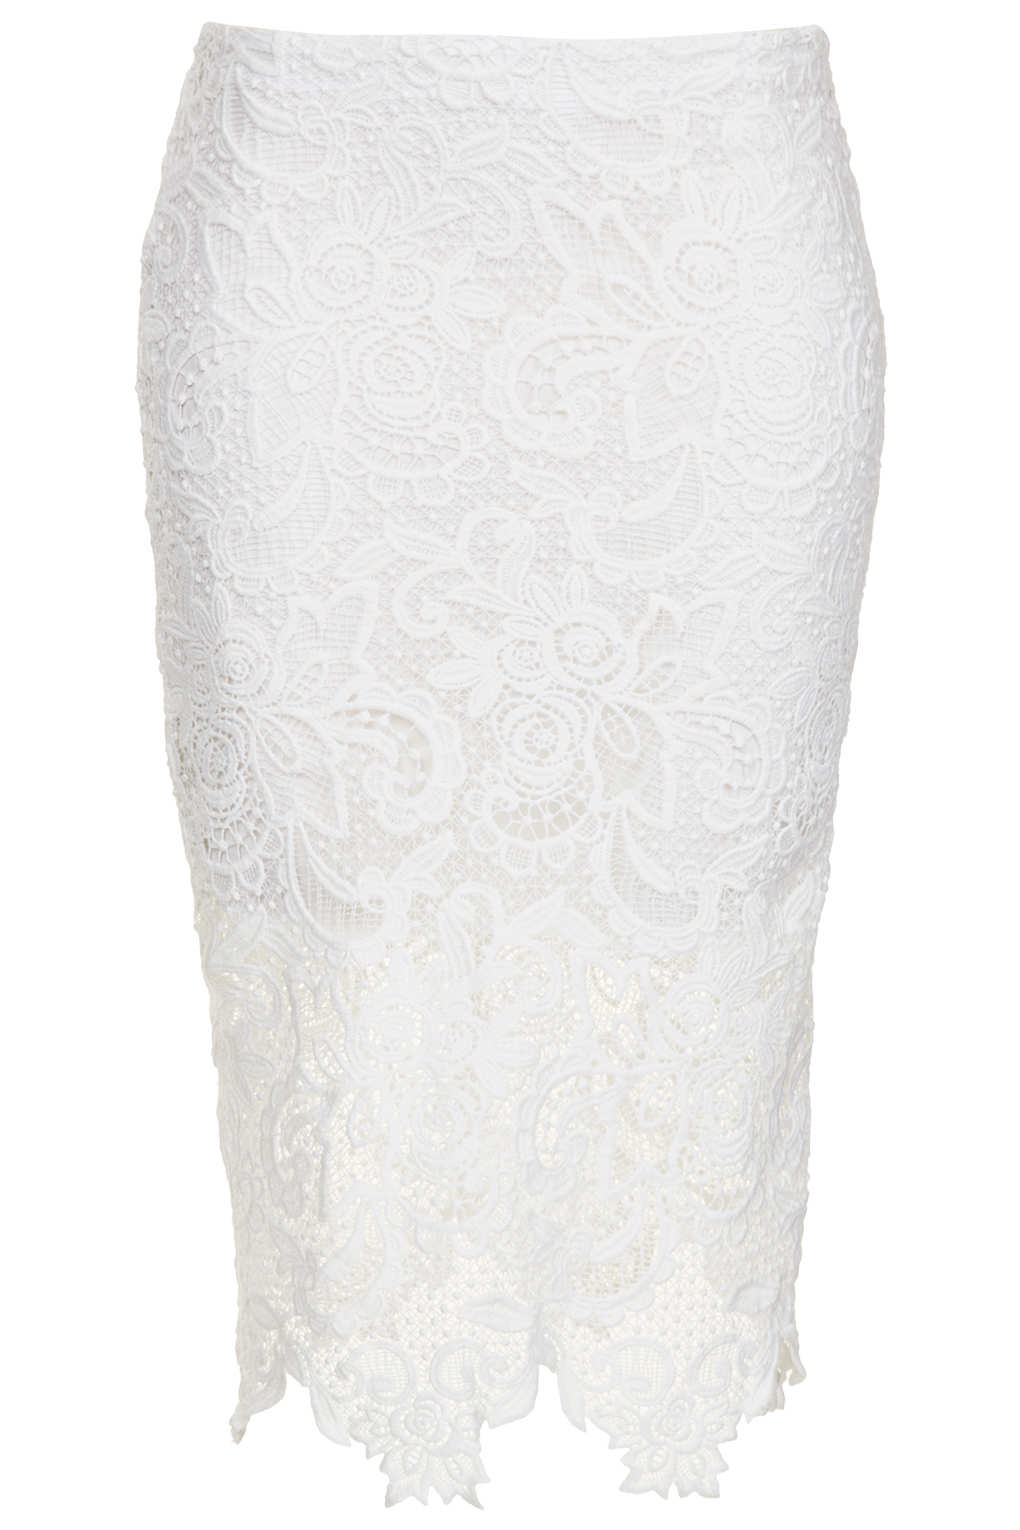 Lyst - TOPSHOP White Lace Pencil Skirt in White